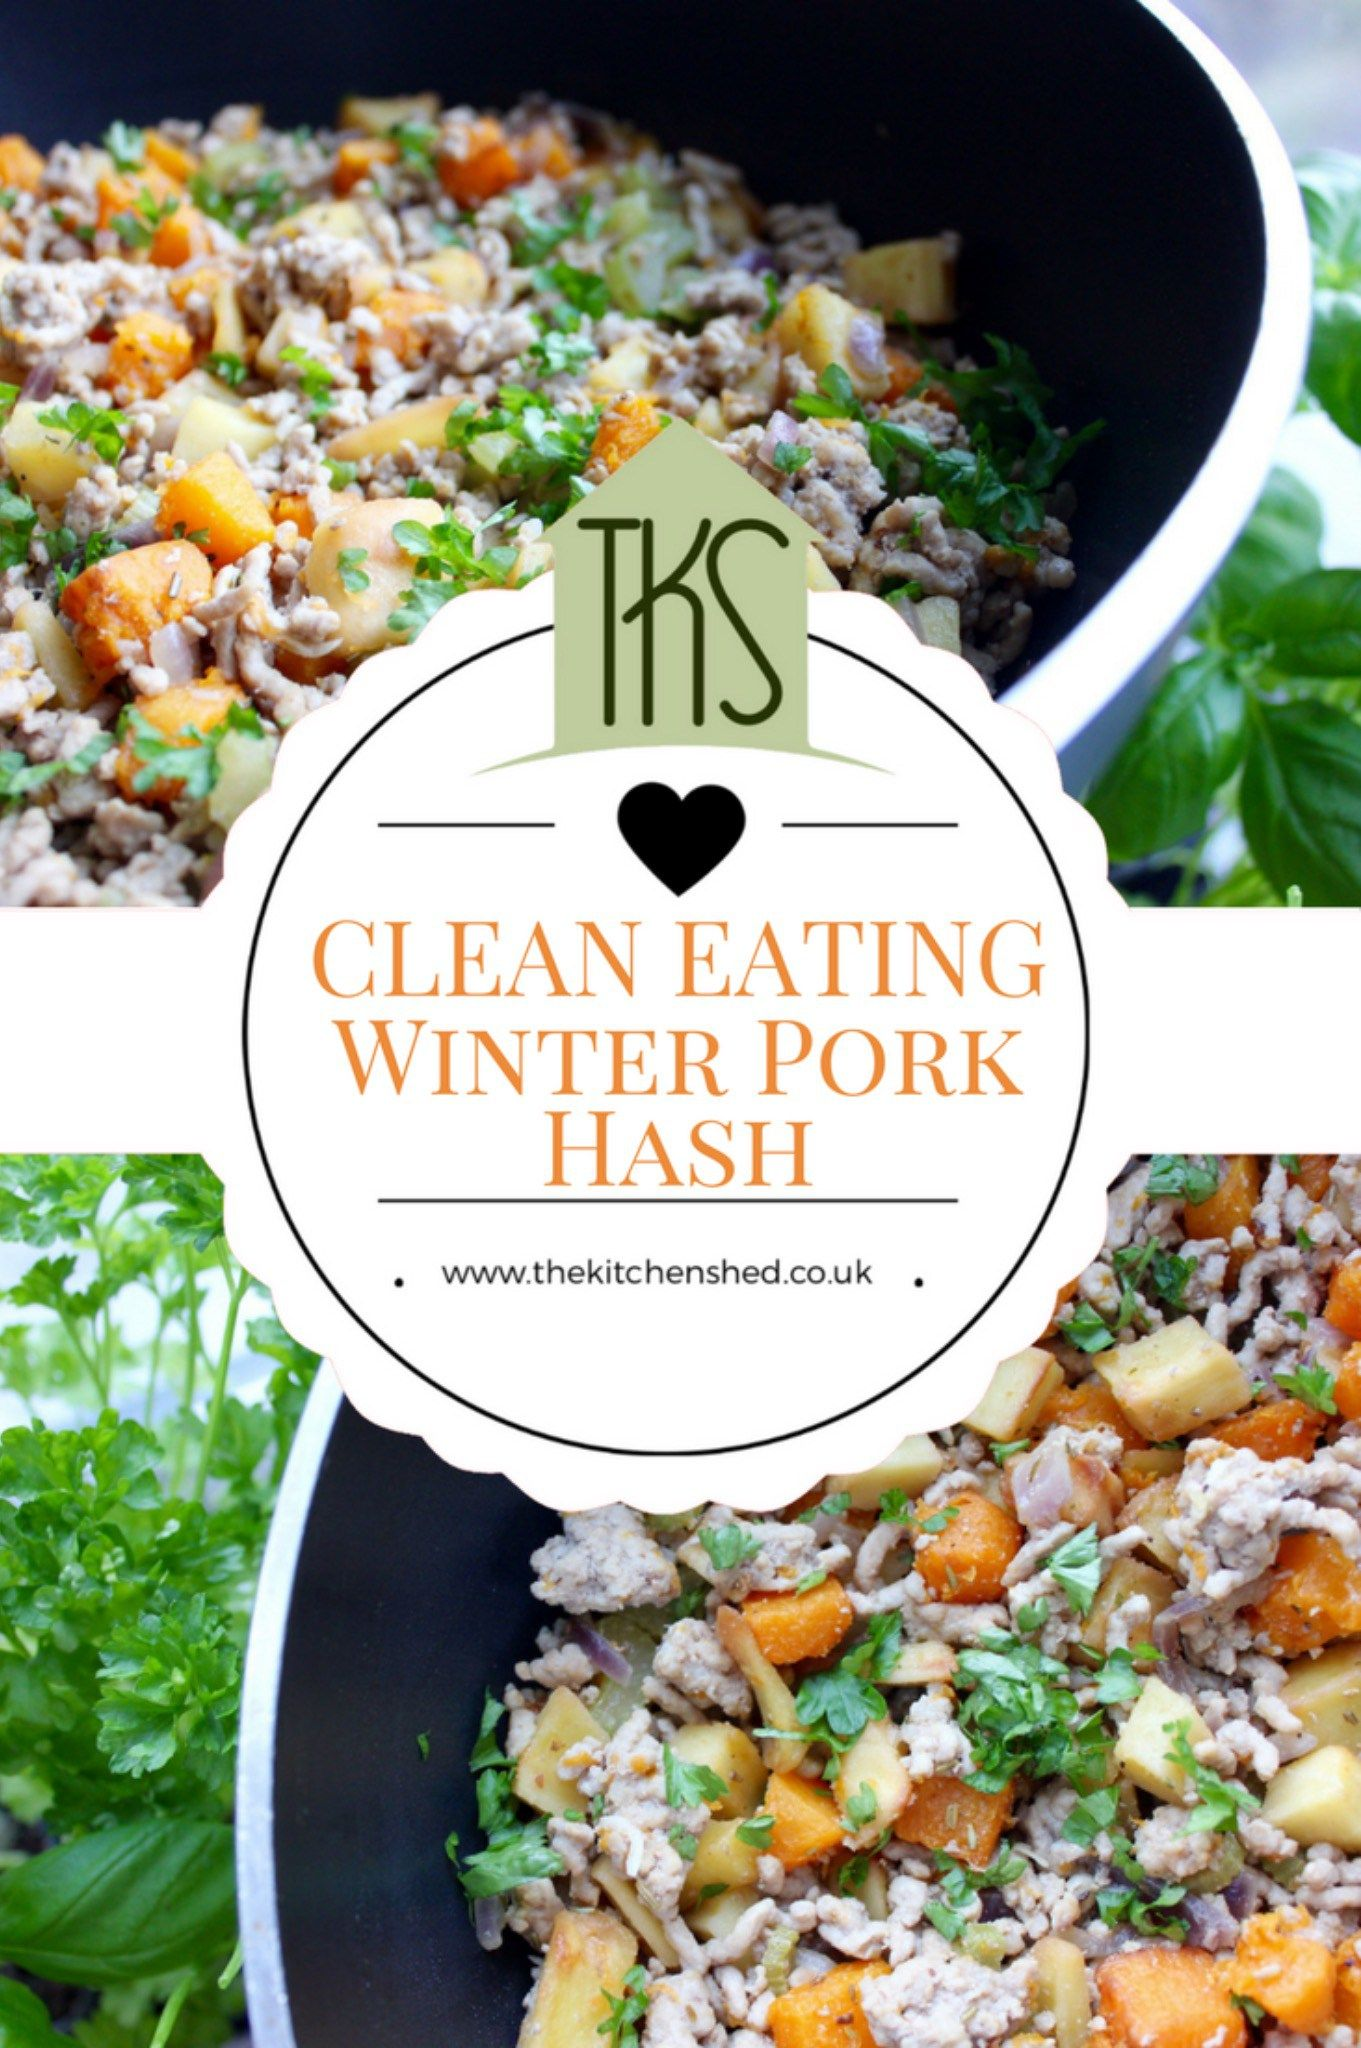 Clean eating winter pork hash recipe clean eating pork and clean eating winter pork hash the kitchen shed forumfinder Image collections